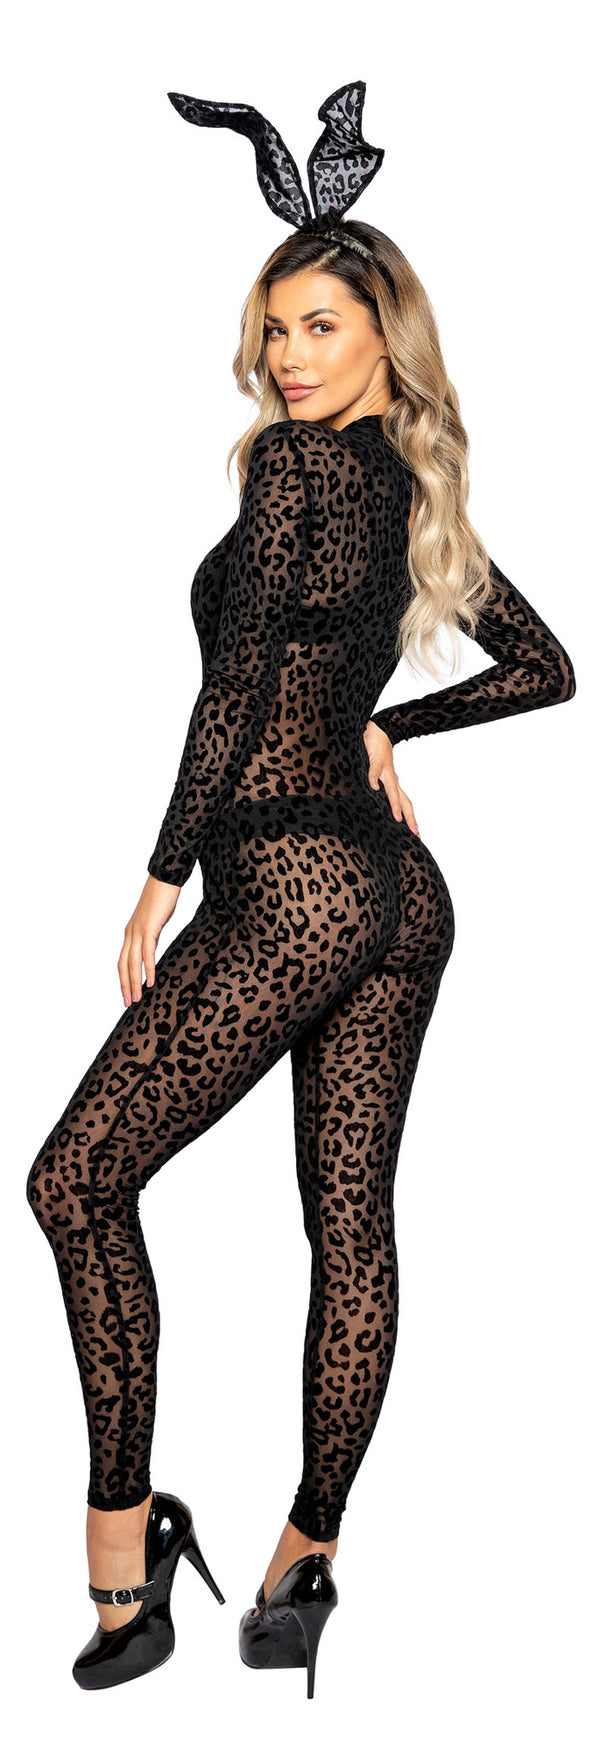 2pc Exotic Crossbreed Leopard Bunny Bodysuit